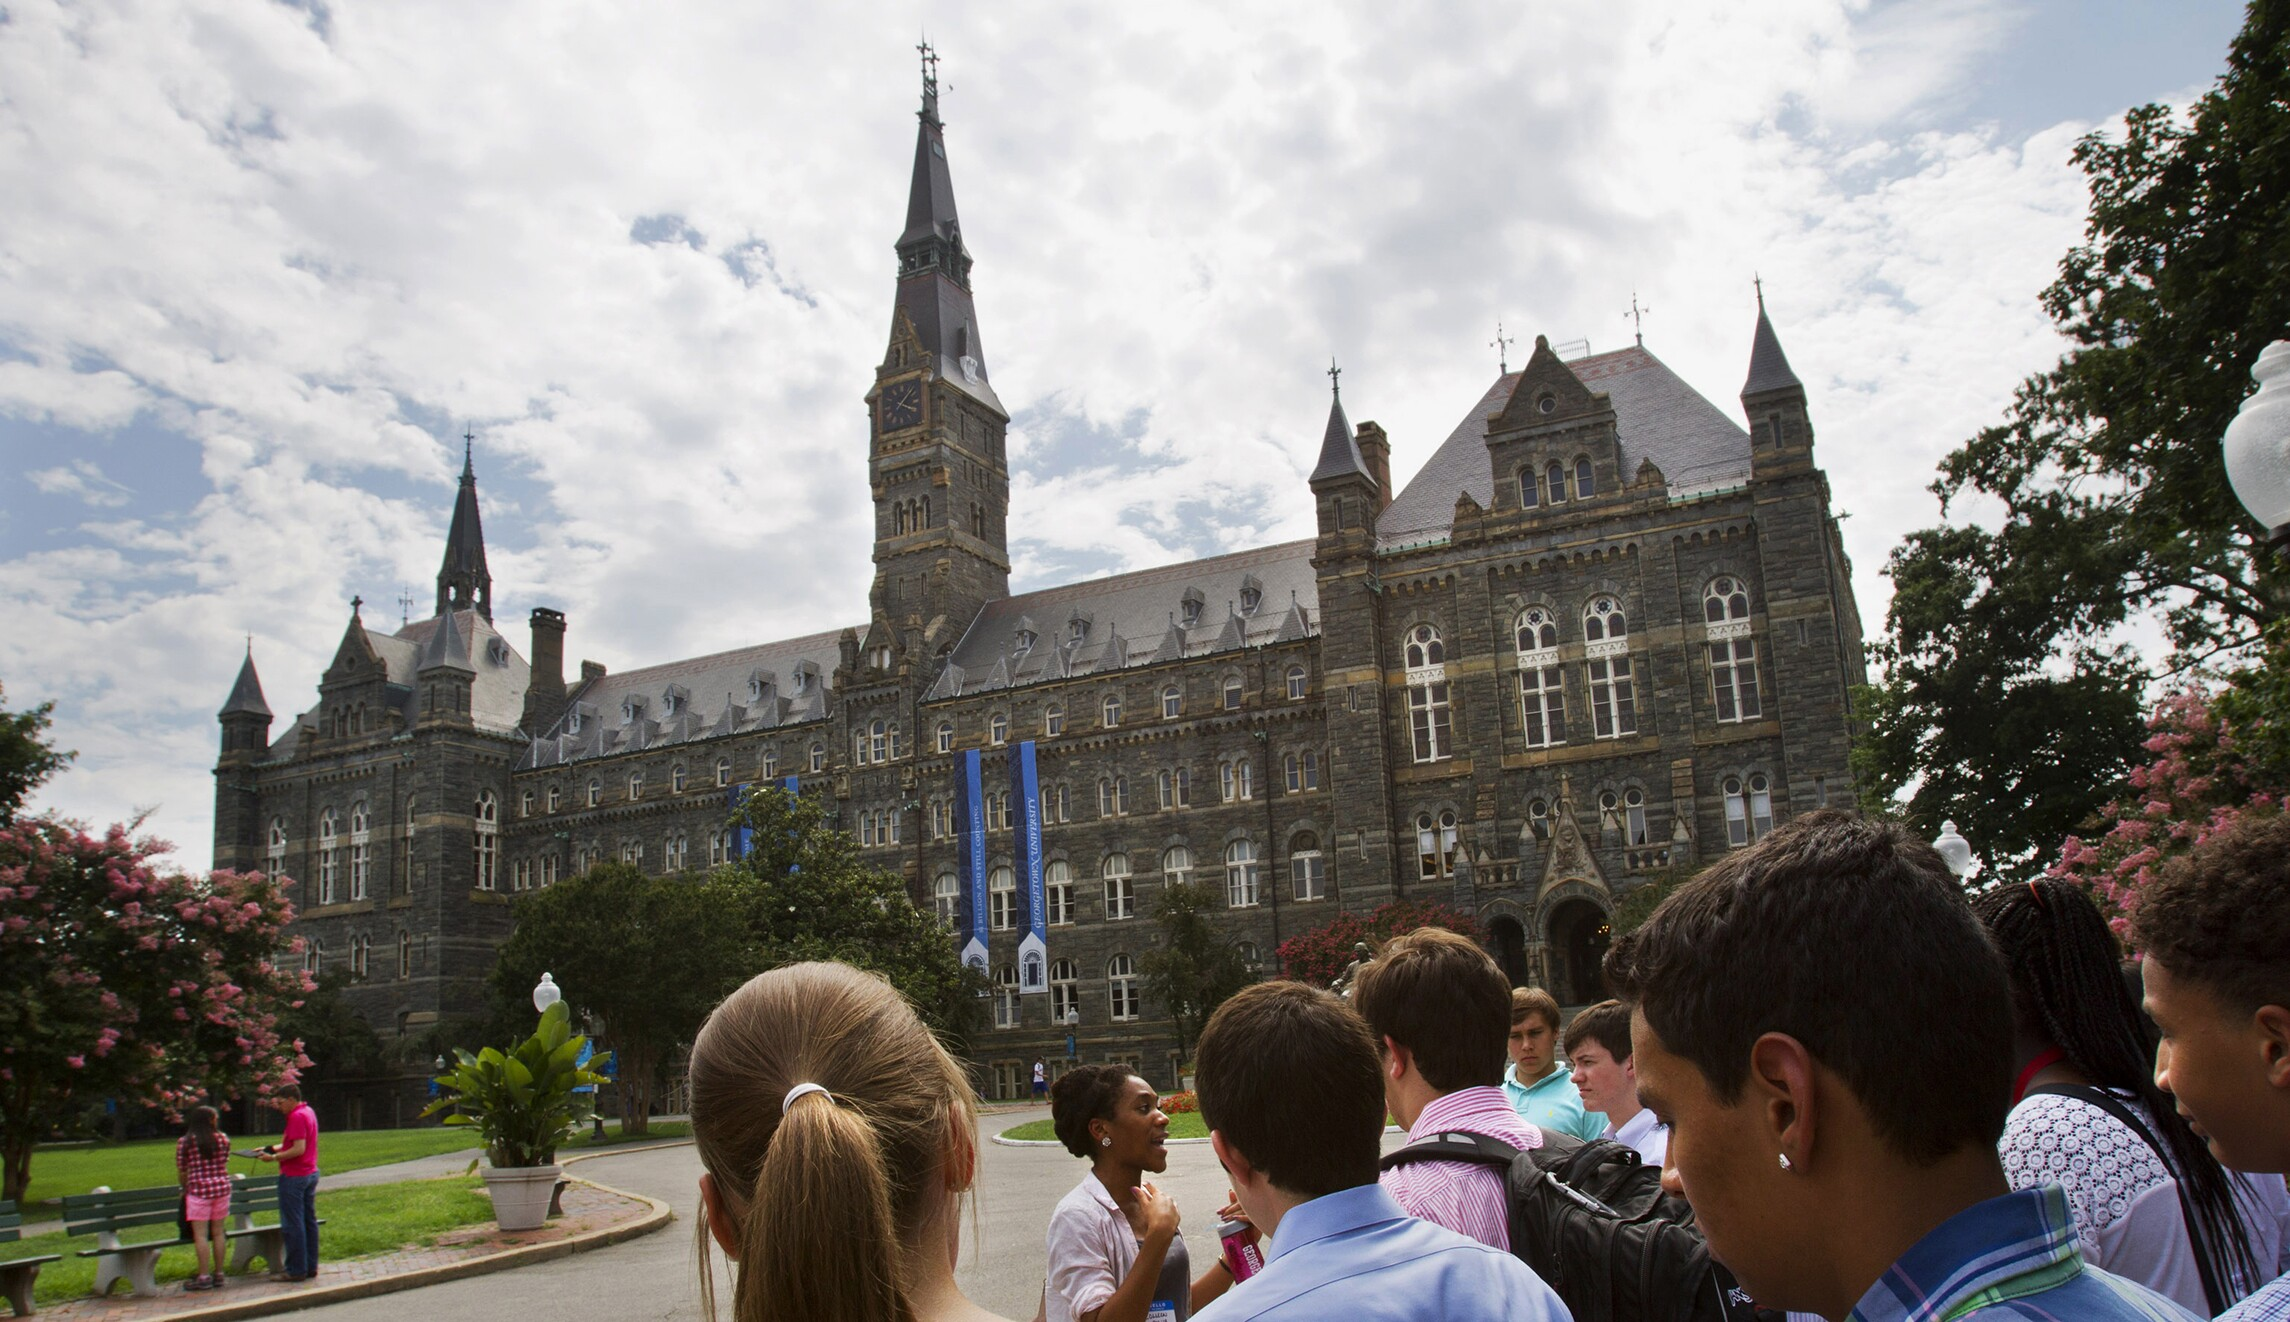 georgetown students try to drum group off campus for espousing